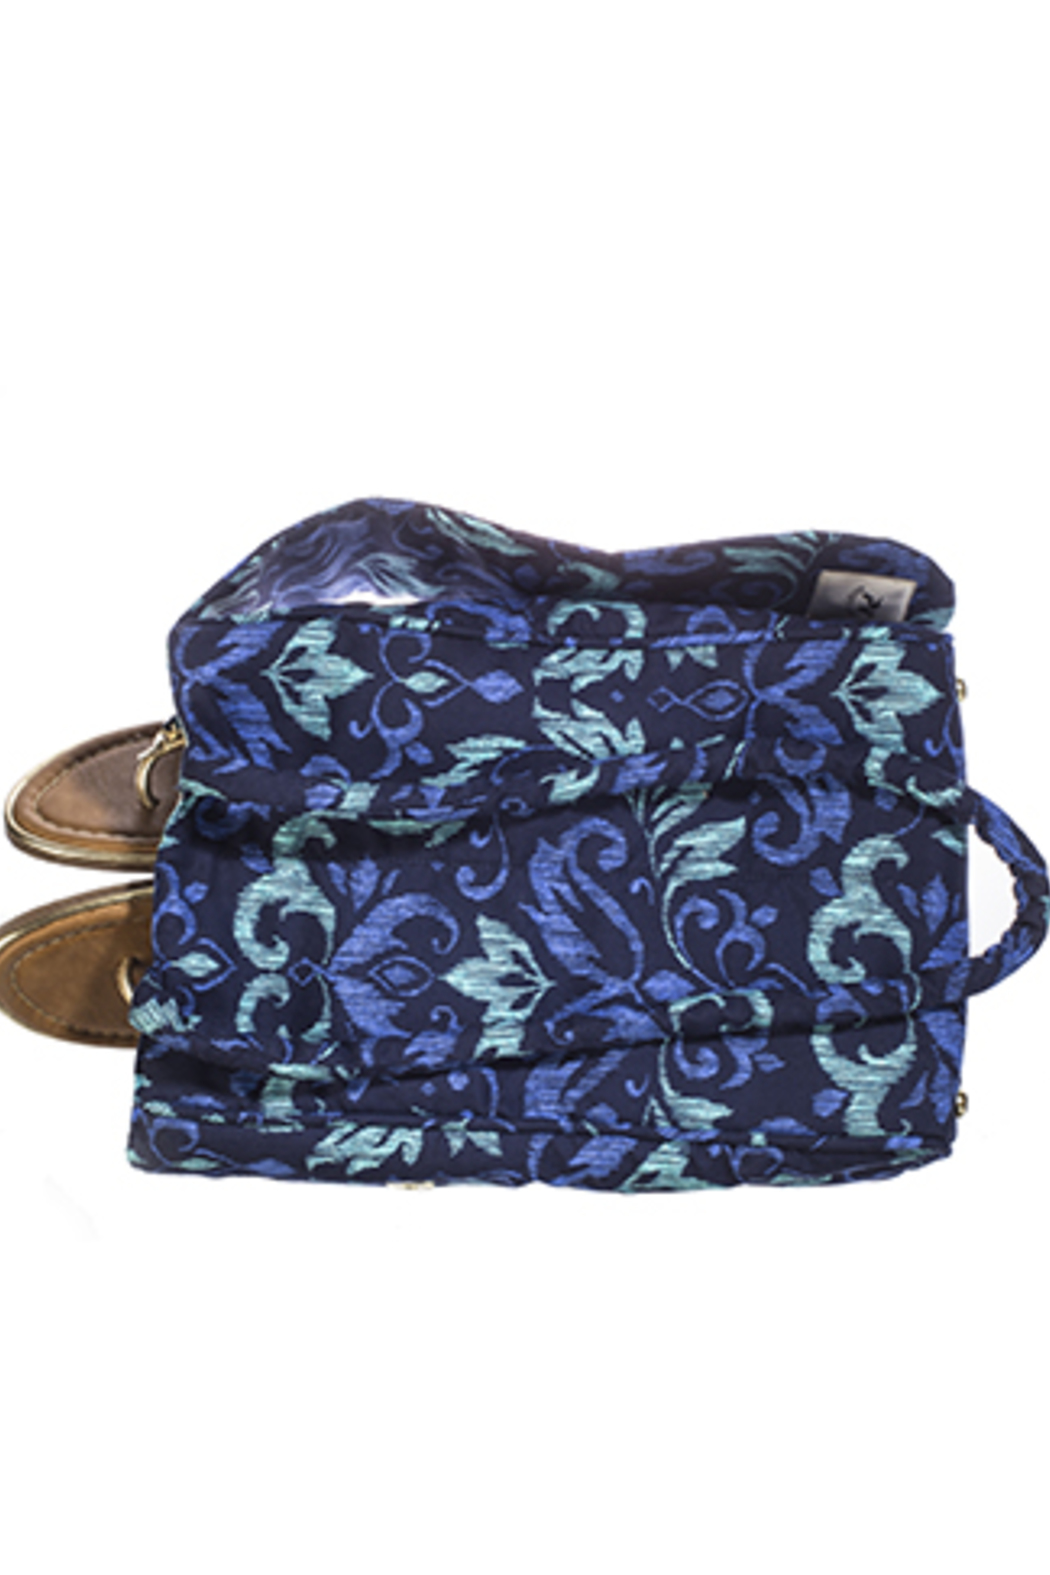 Two Sisters Accessories Travel Shoe Totes - Side Cropped Image